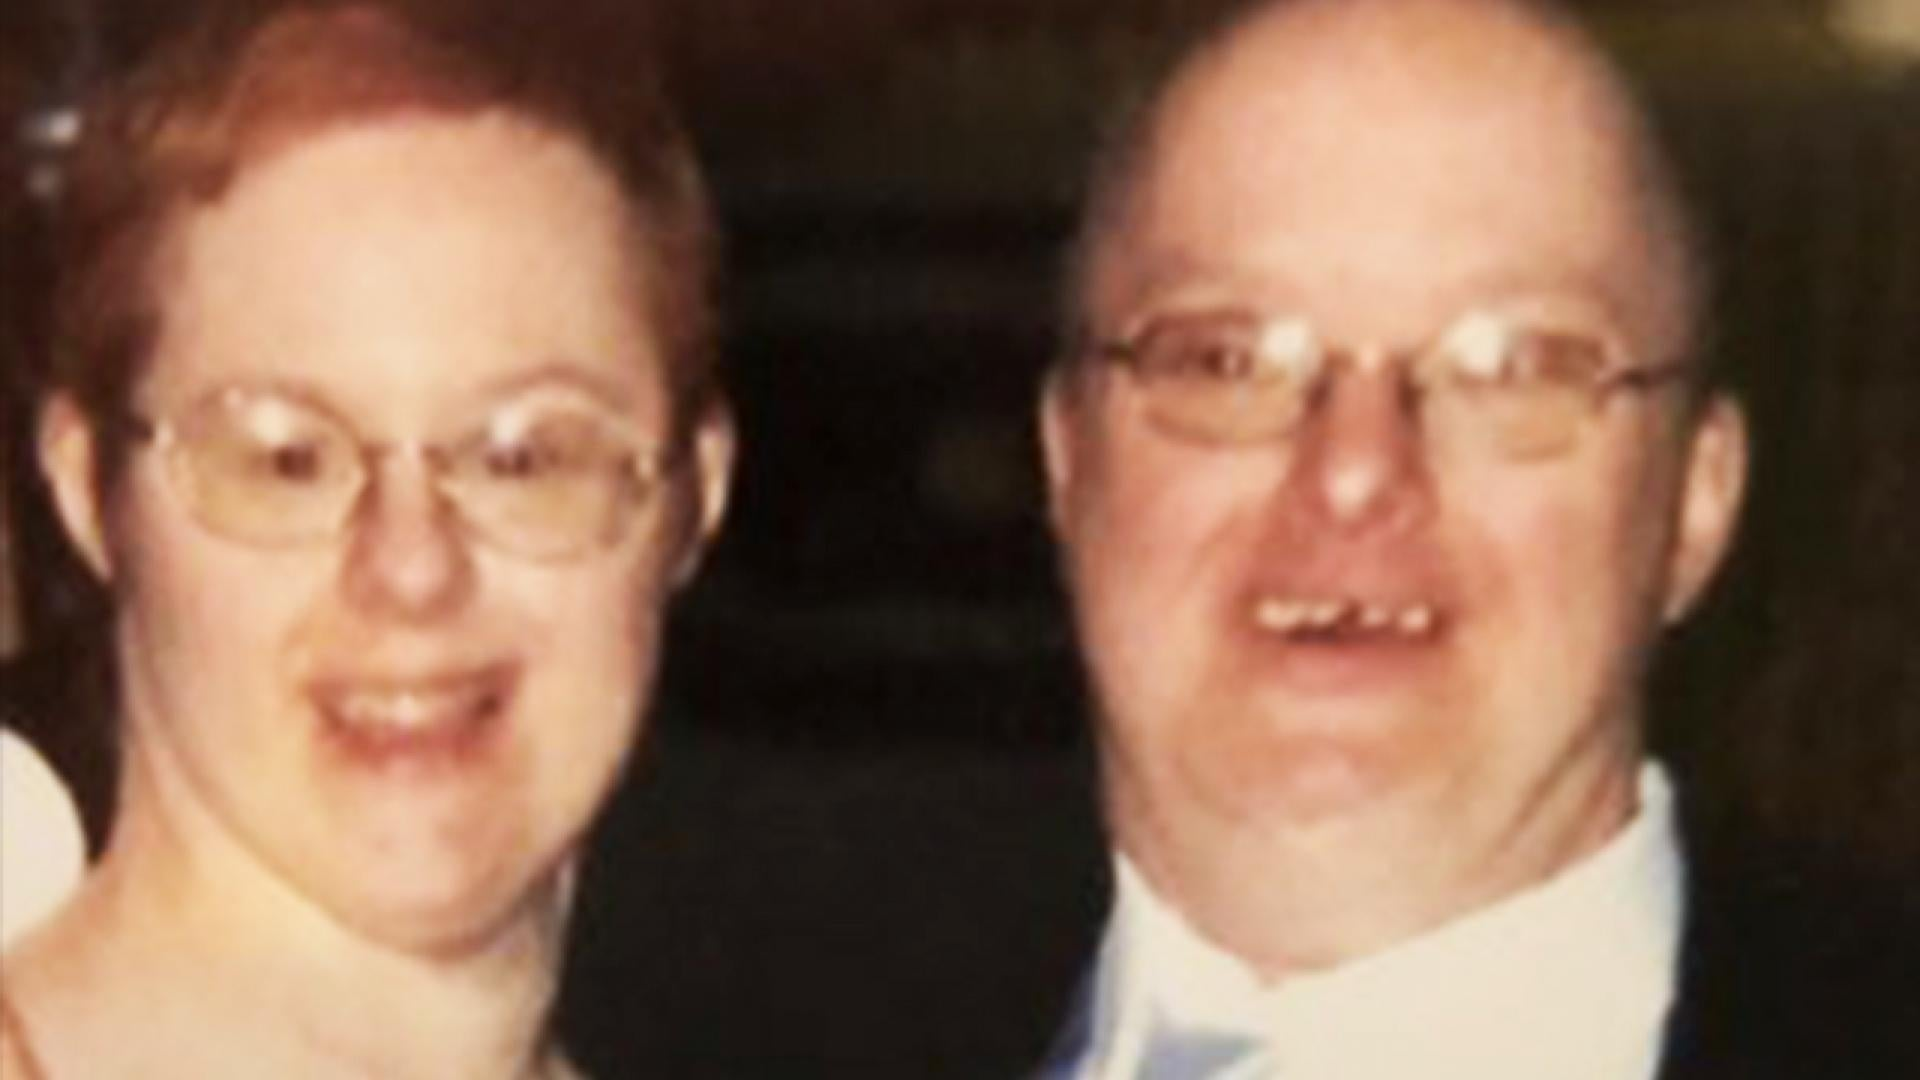 Paul DeForge, of Syracuse, New York, is seen in a photo with his wife, Kris Scharoun-DeForge.